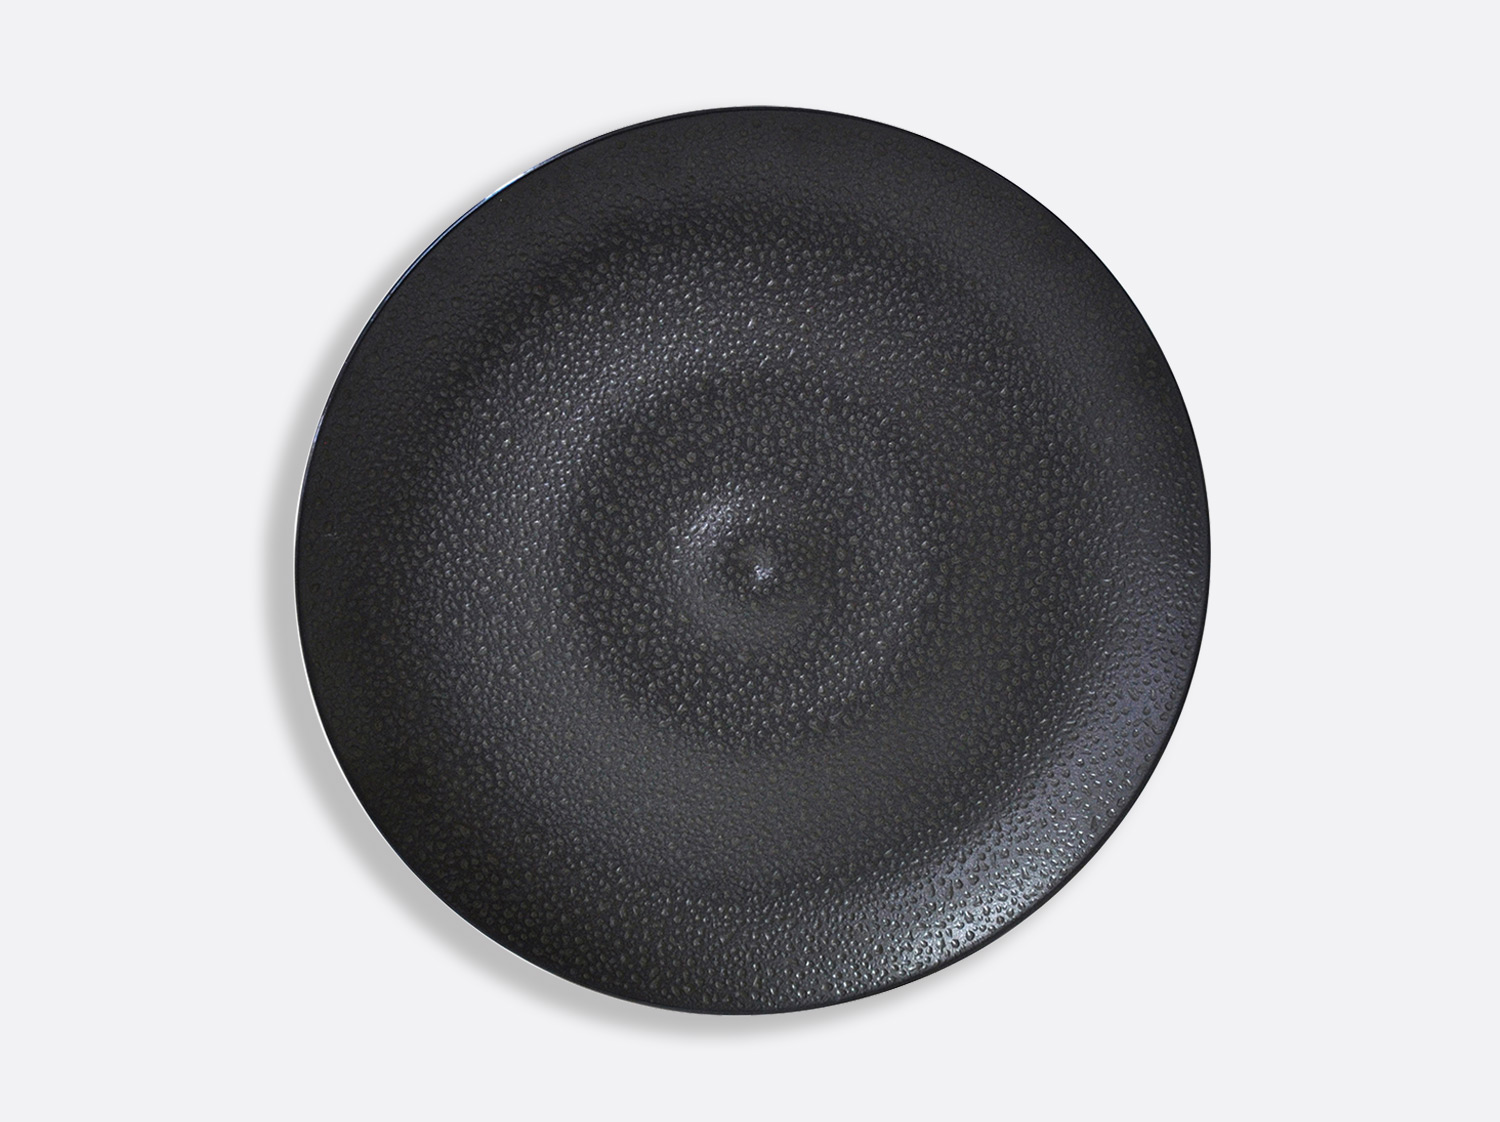 China Plate 31 cm of the collection Bulle sable noir | Bernardaud